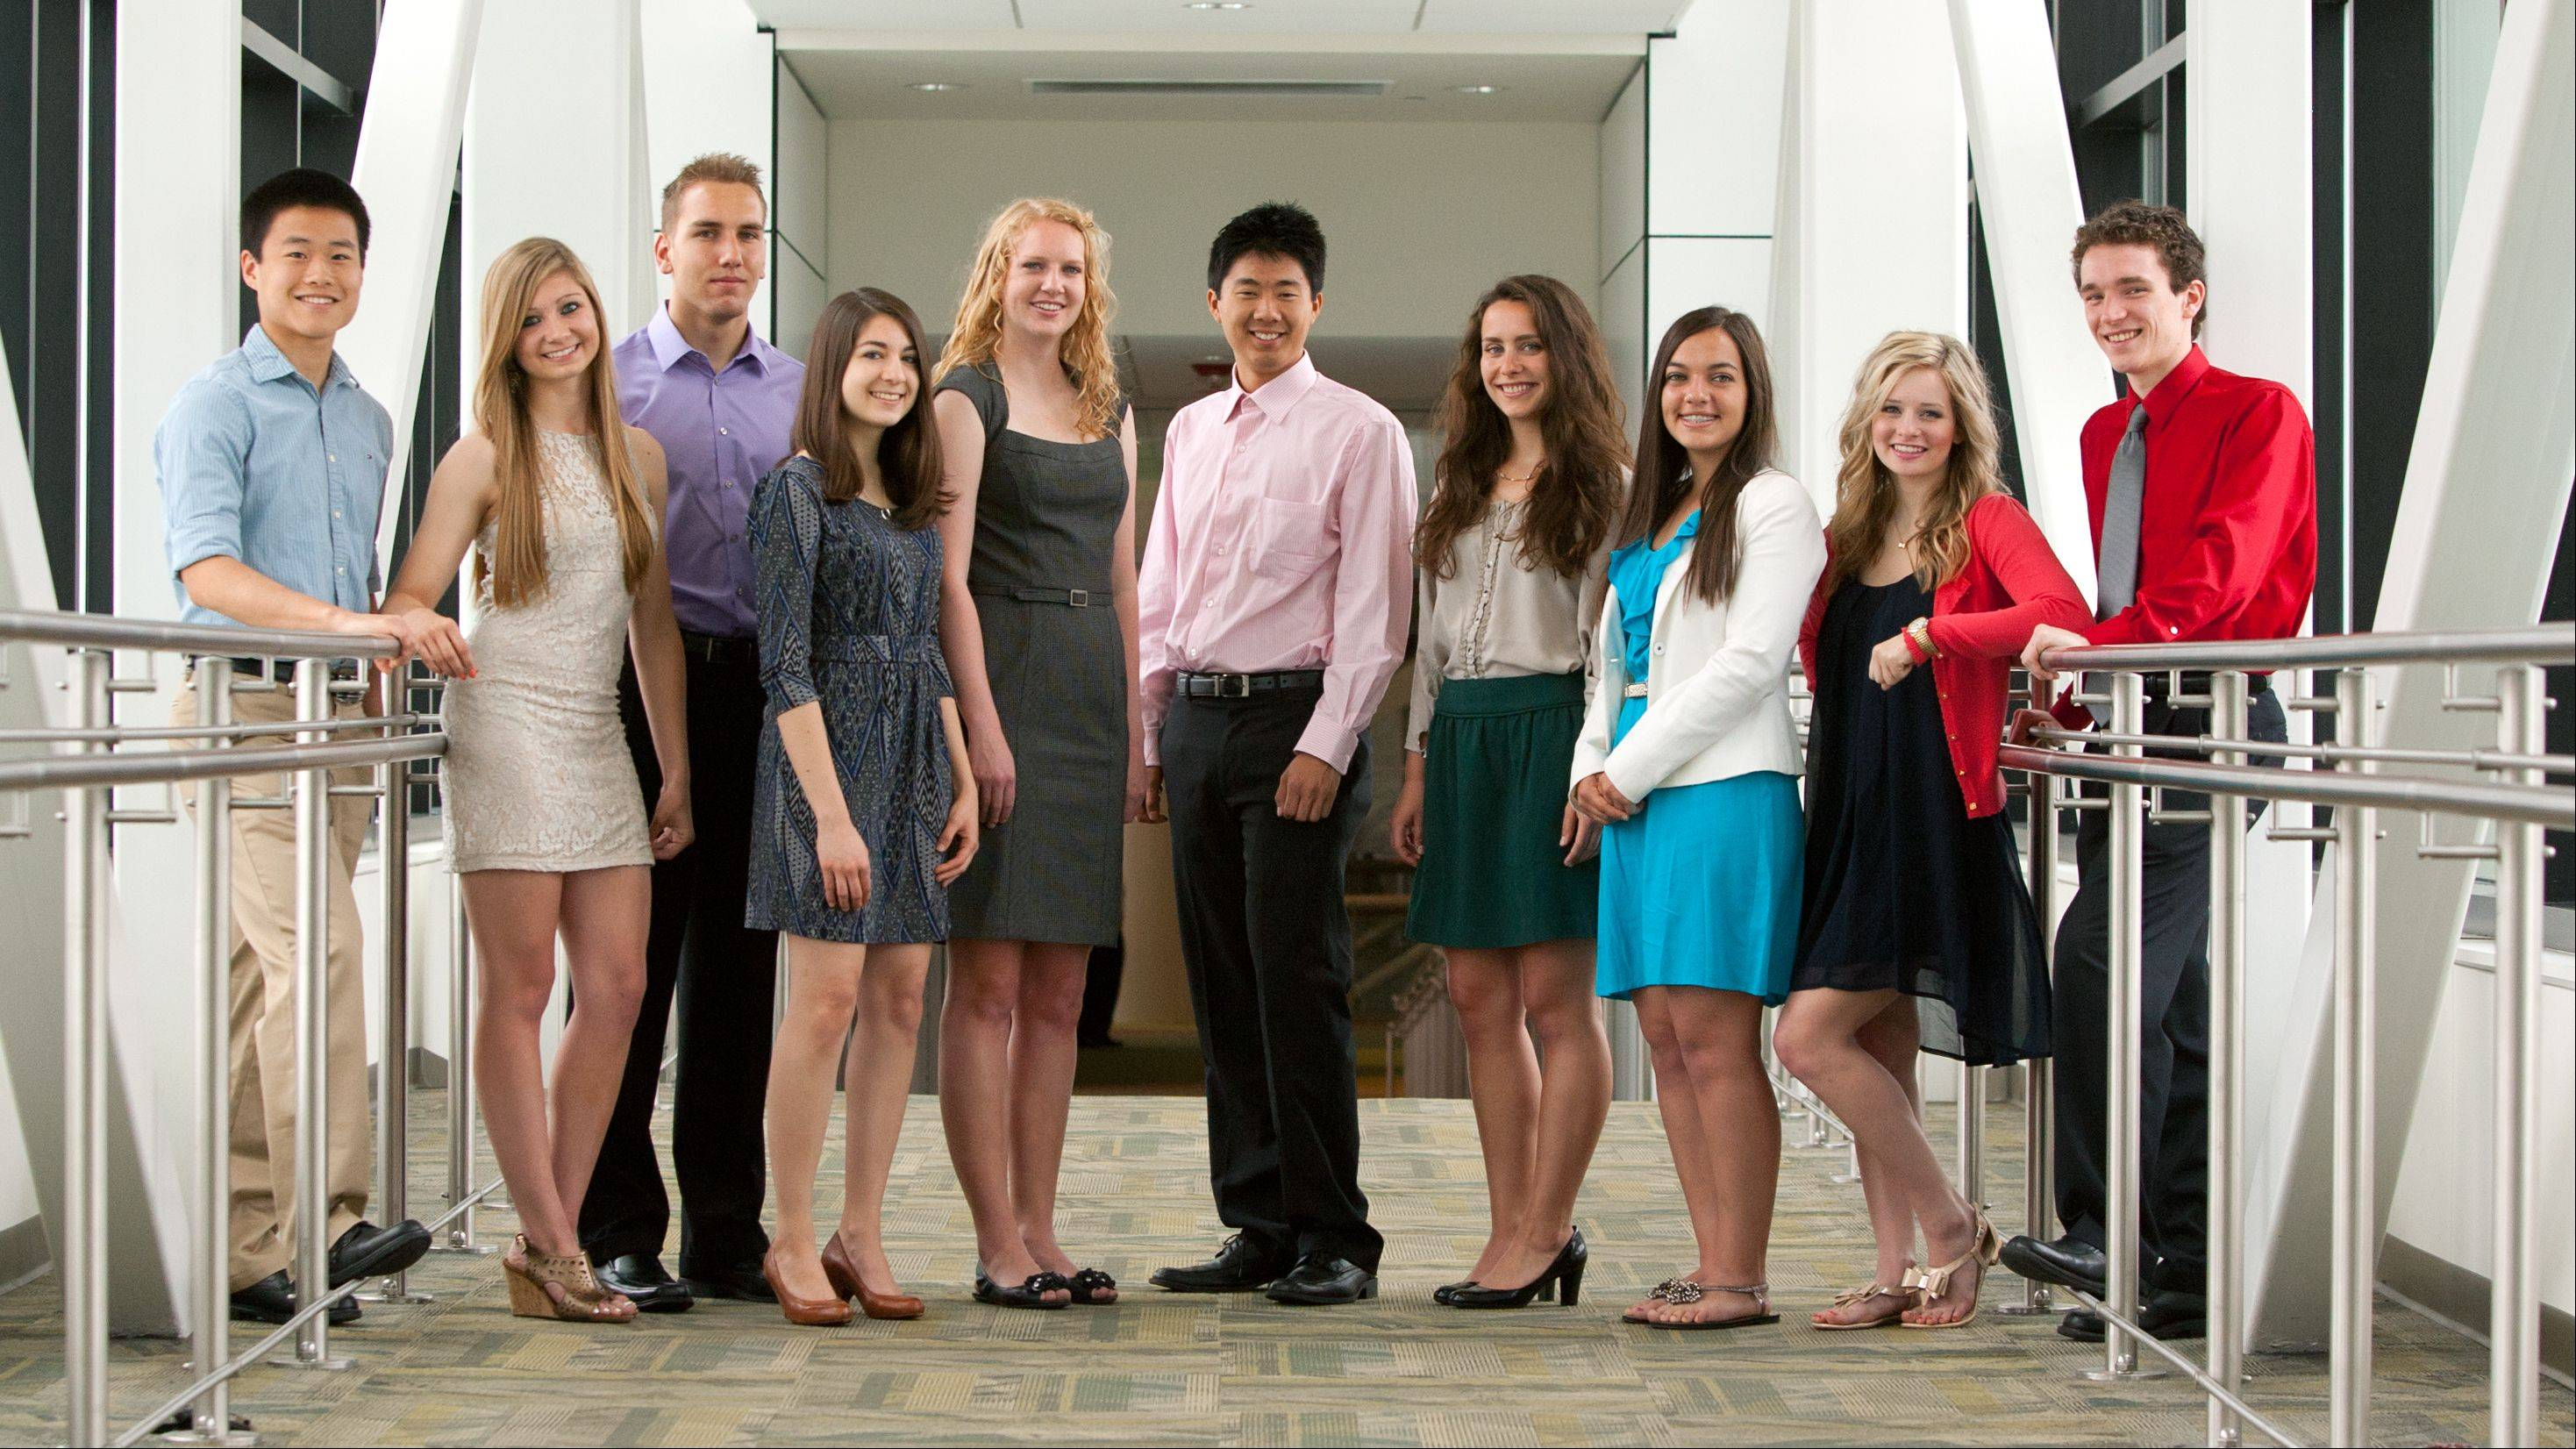 The 2012-2013 Daily Herald DuPage County Academic Team members pose for a photo at the College of DuPage. They include, from left to right: Danny Zhuang of Metea Valley High School, Jourdan Ewoldt of Glenbard East High School, Vassil Mladenov of Lake Park High School, Lucia Korpas of Naperville Central High School, Megan Knister of Hinsdale Central High School, Alex Liu of Neuqua Valley High School, Alana Osterling of Downers Grove North High School, Maria Anastasia Arianas of Fenton High School, Cassandra Crifase of Addison Trail High School, and Andrew Bean of Glenbard South High School.